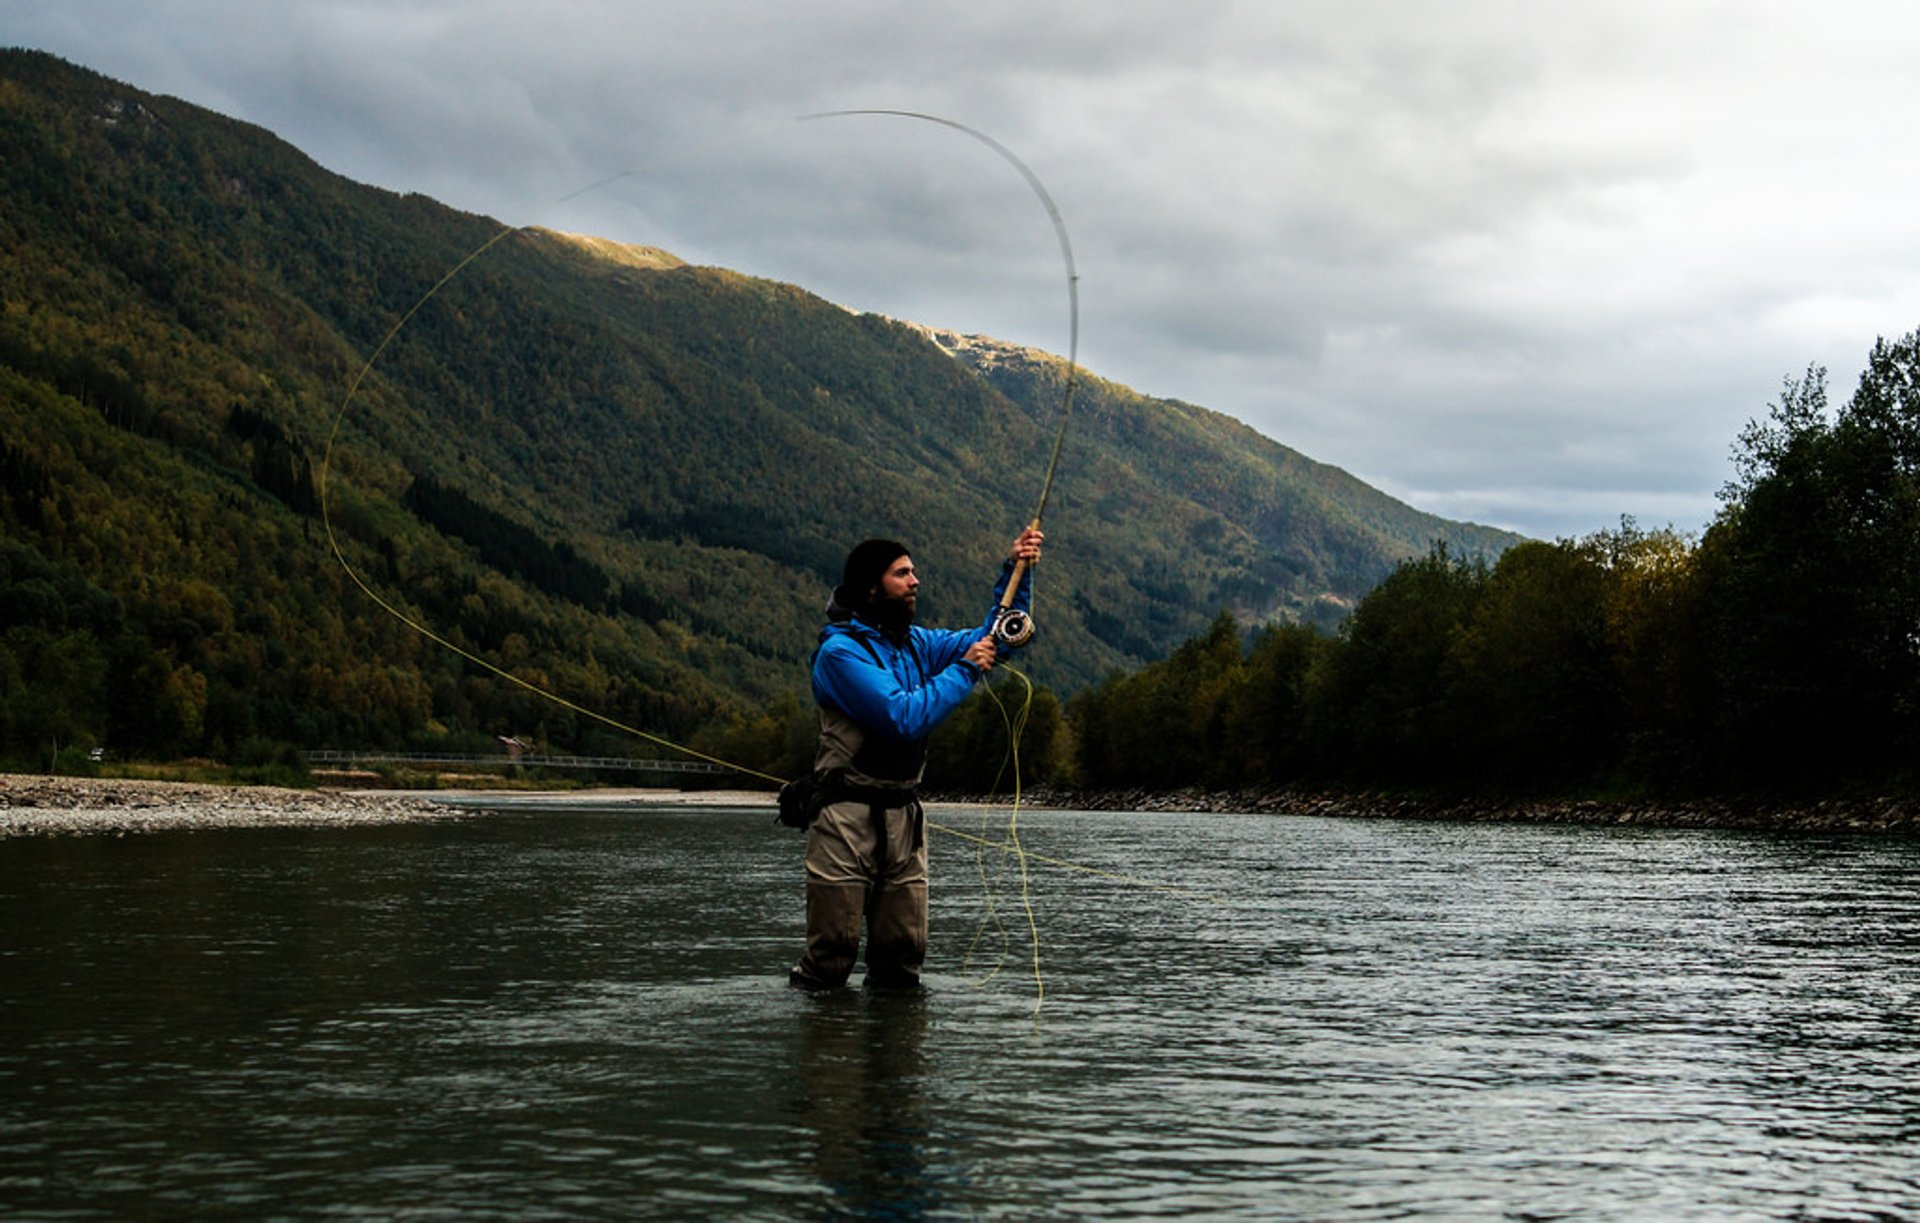 Salmon Fishing in Norway 2020 - Best Time